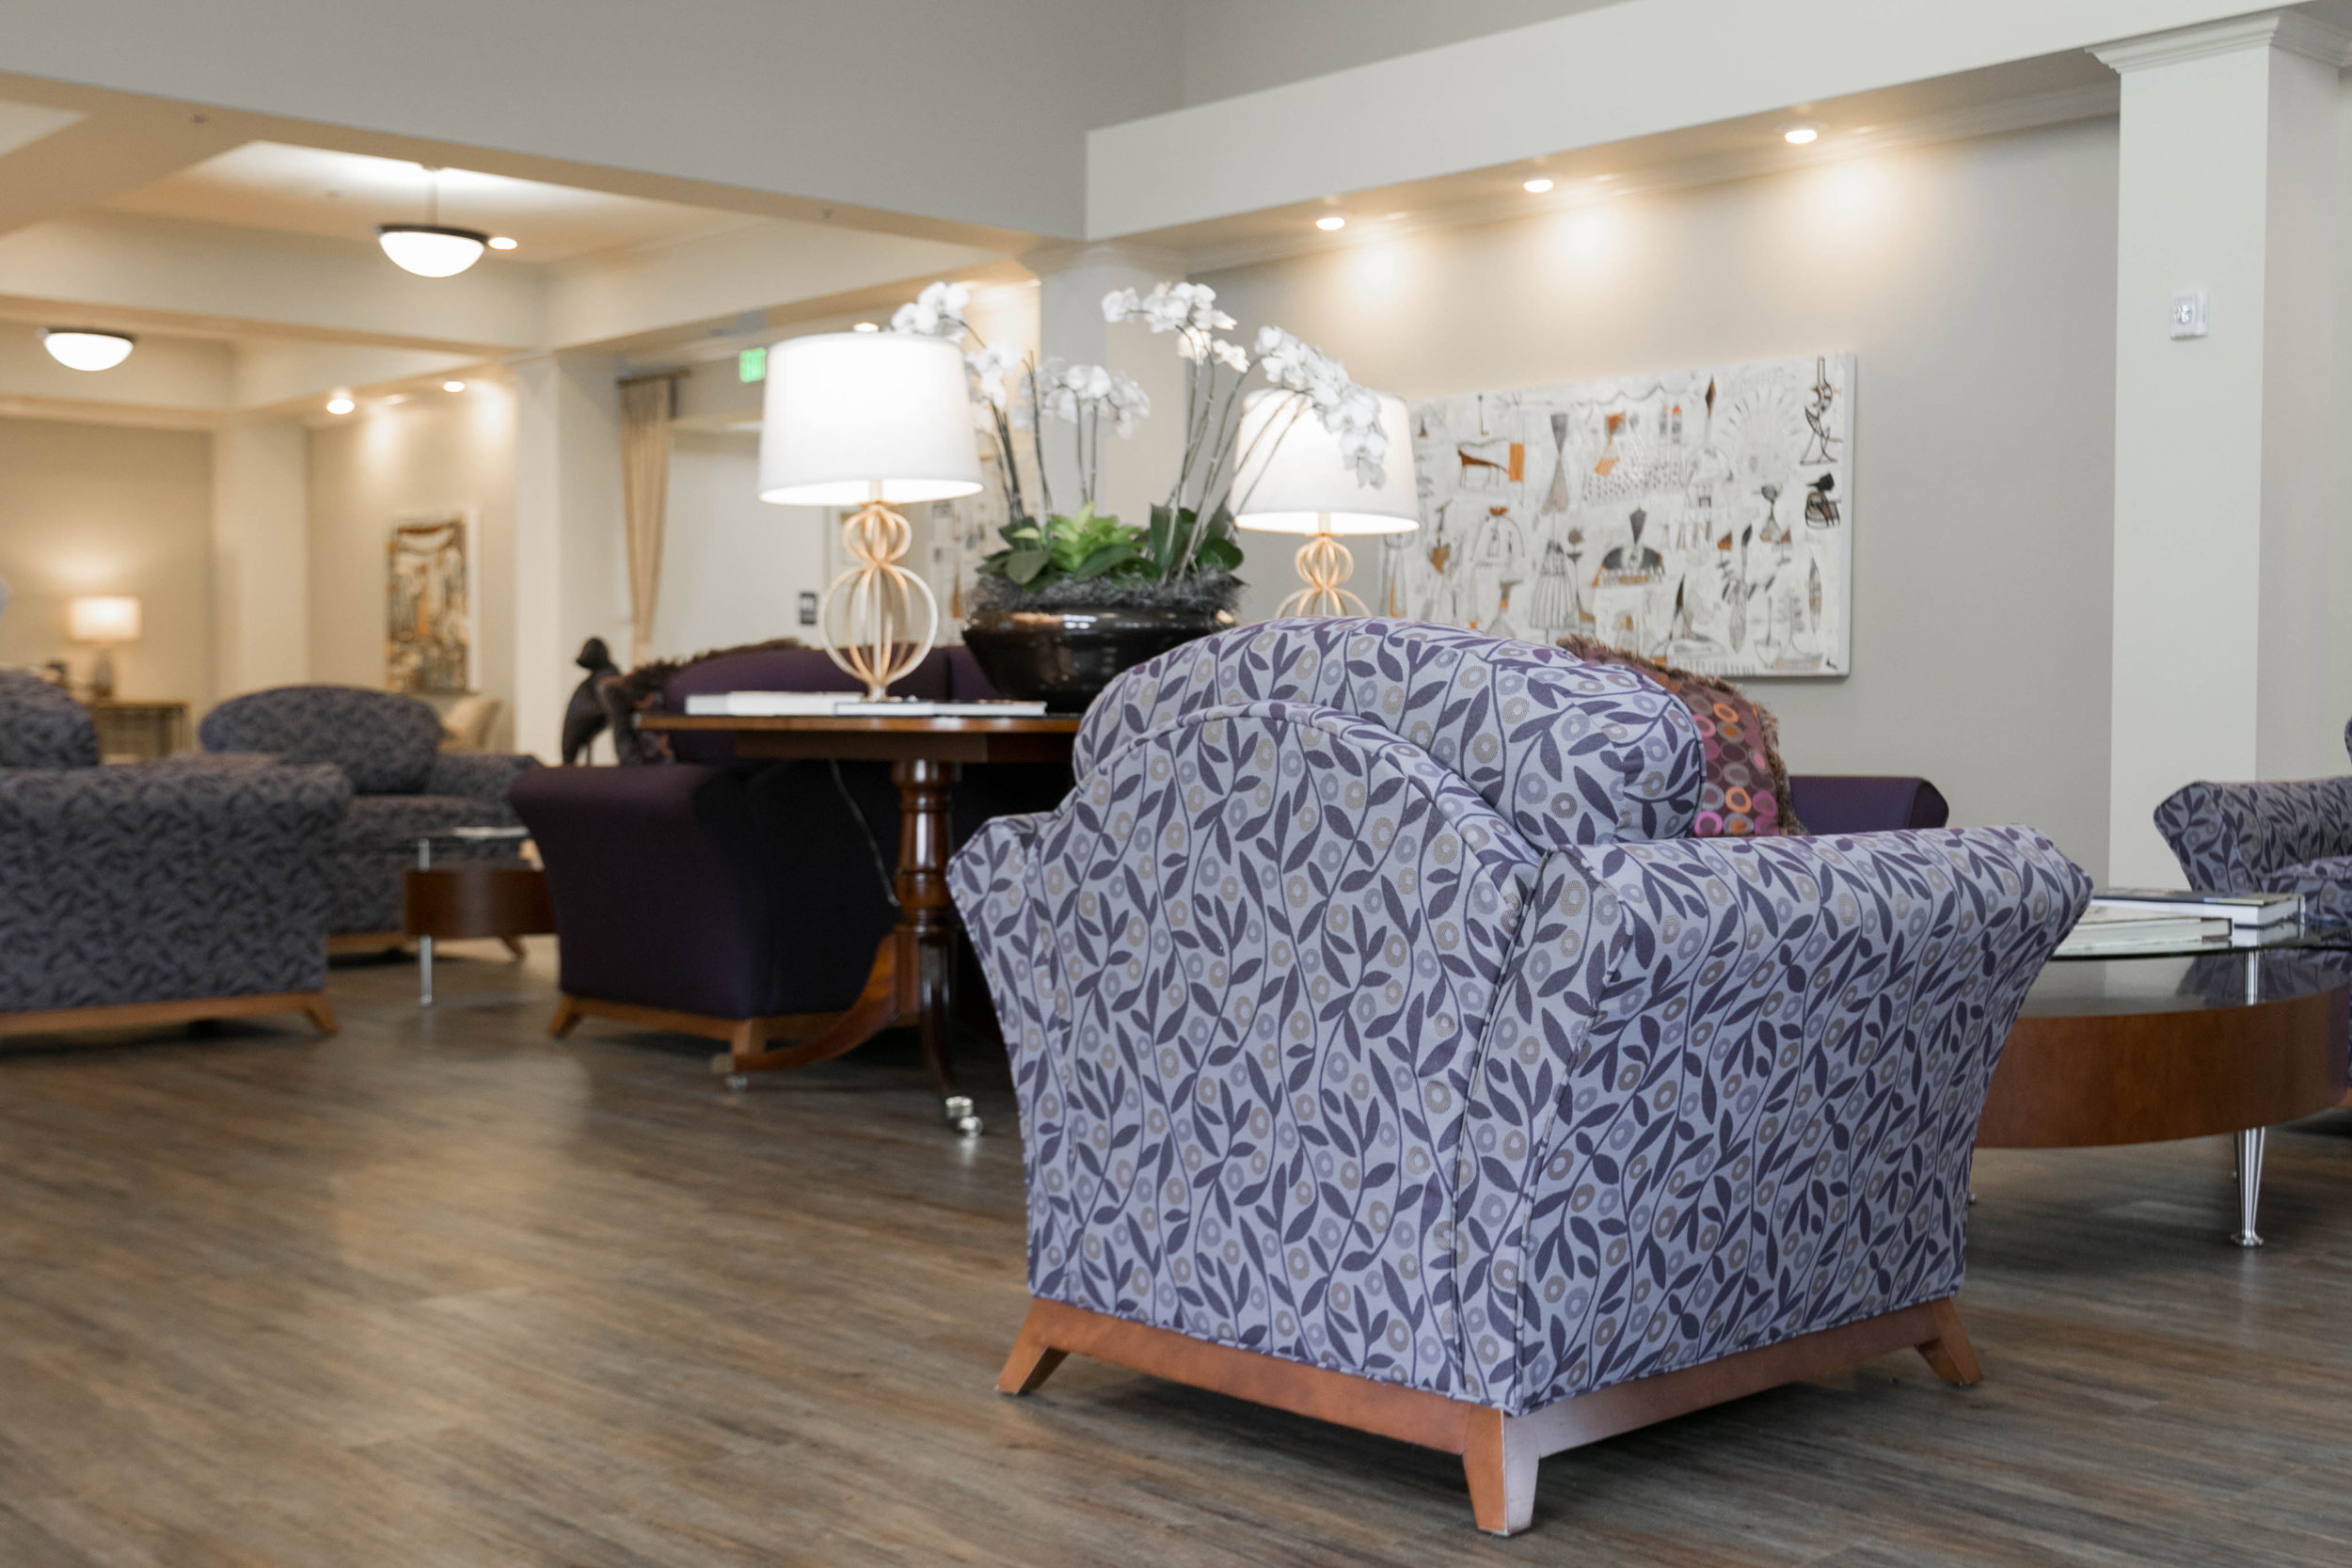 About Sfd Southern Furniture Direct